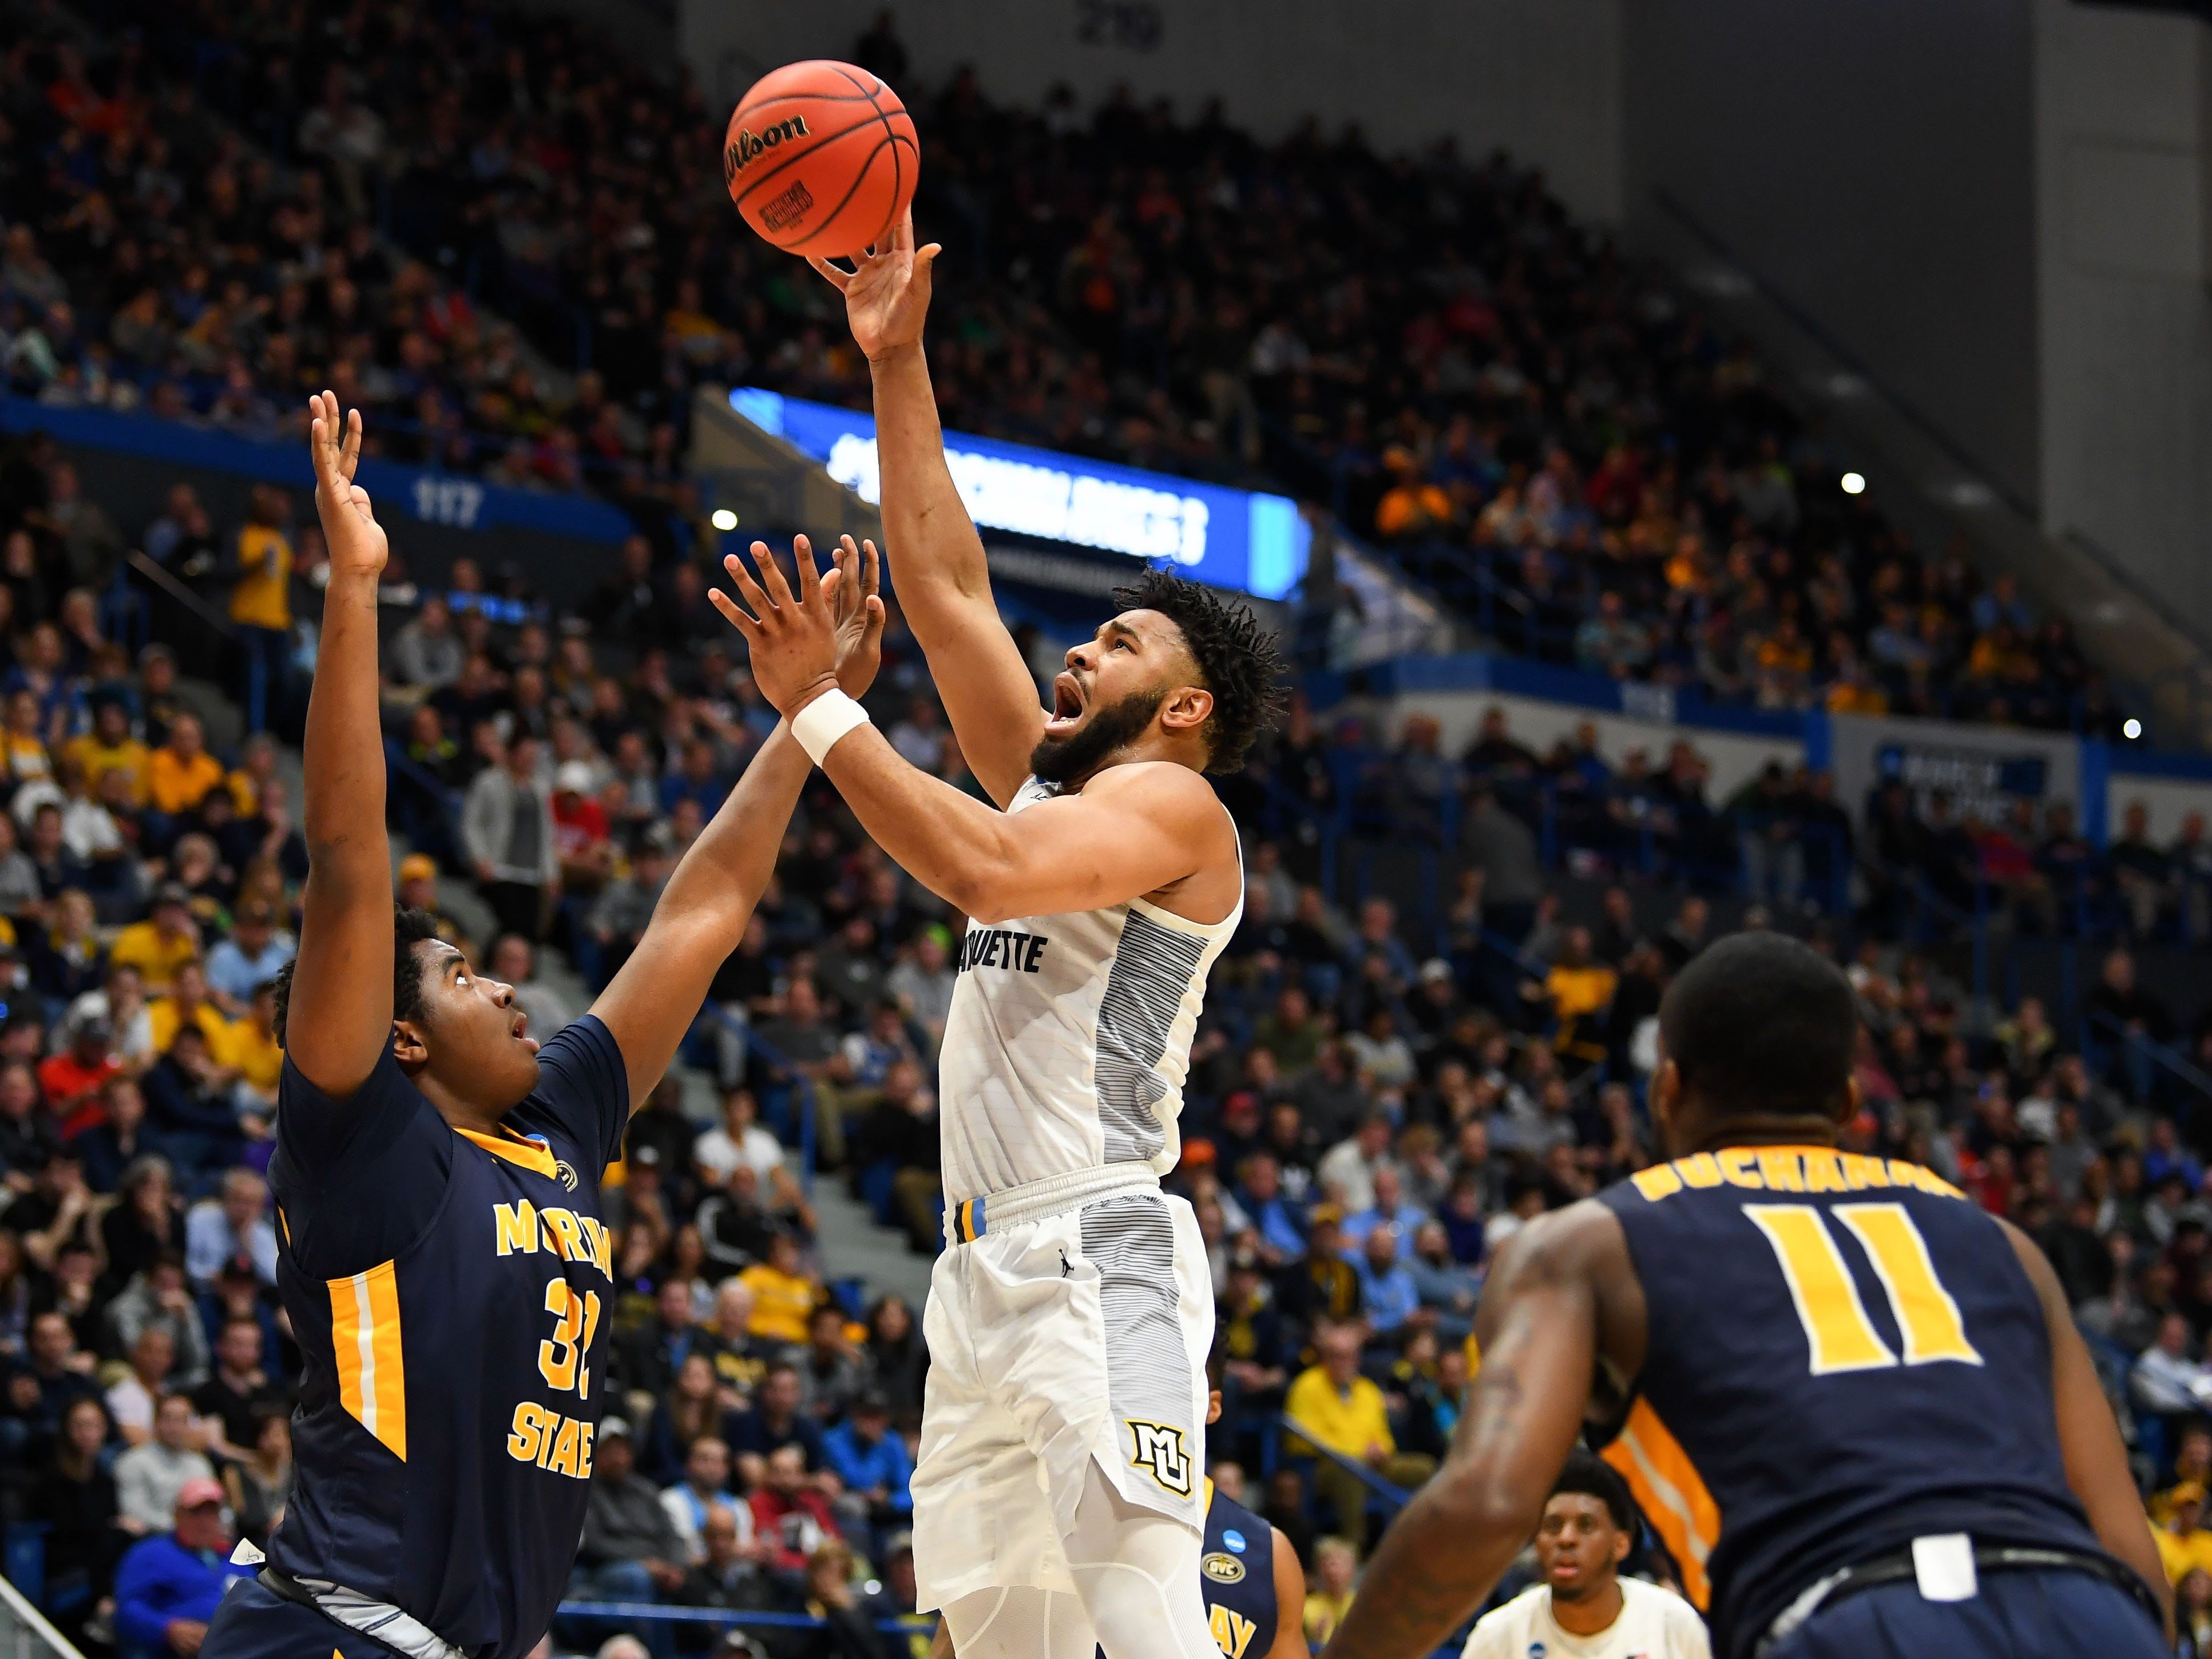 Golden Eagles forward Ed Morrow puts up a shot near the basket over Murray State's Darnell Cowart during the first half.